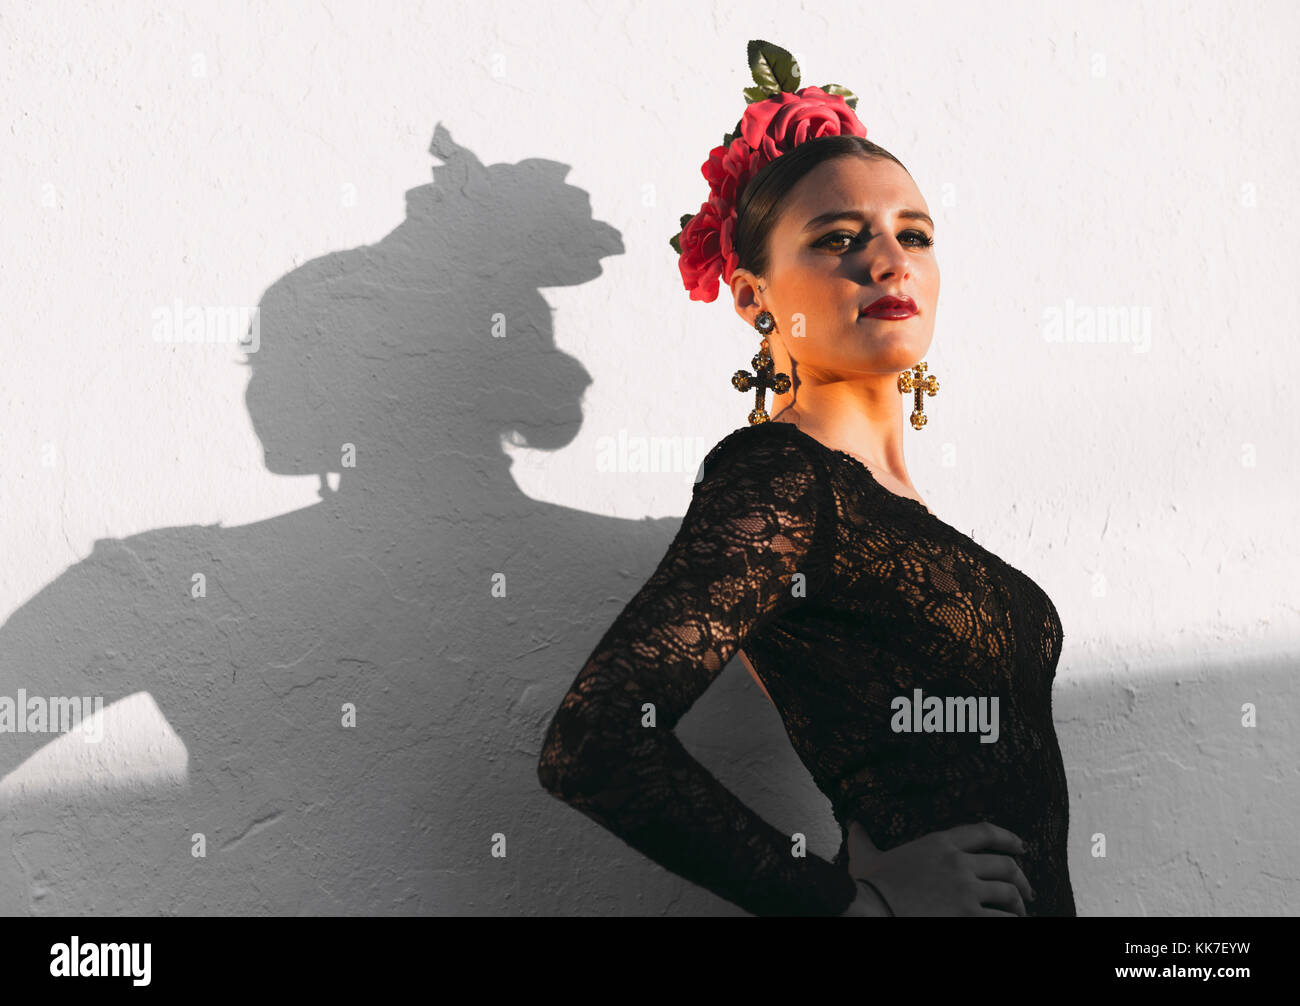 Spanish woman in a typical flamenco dress. - Stock Image